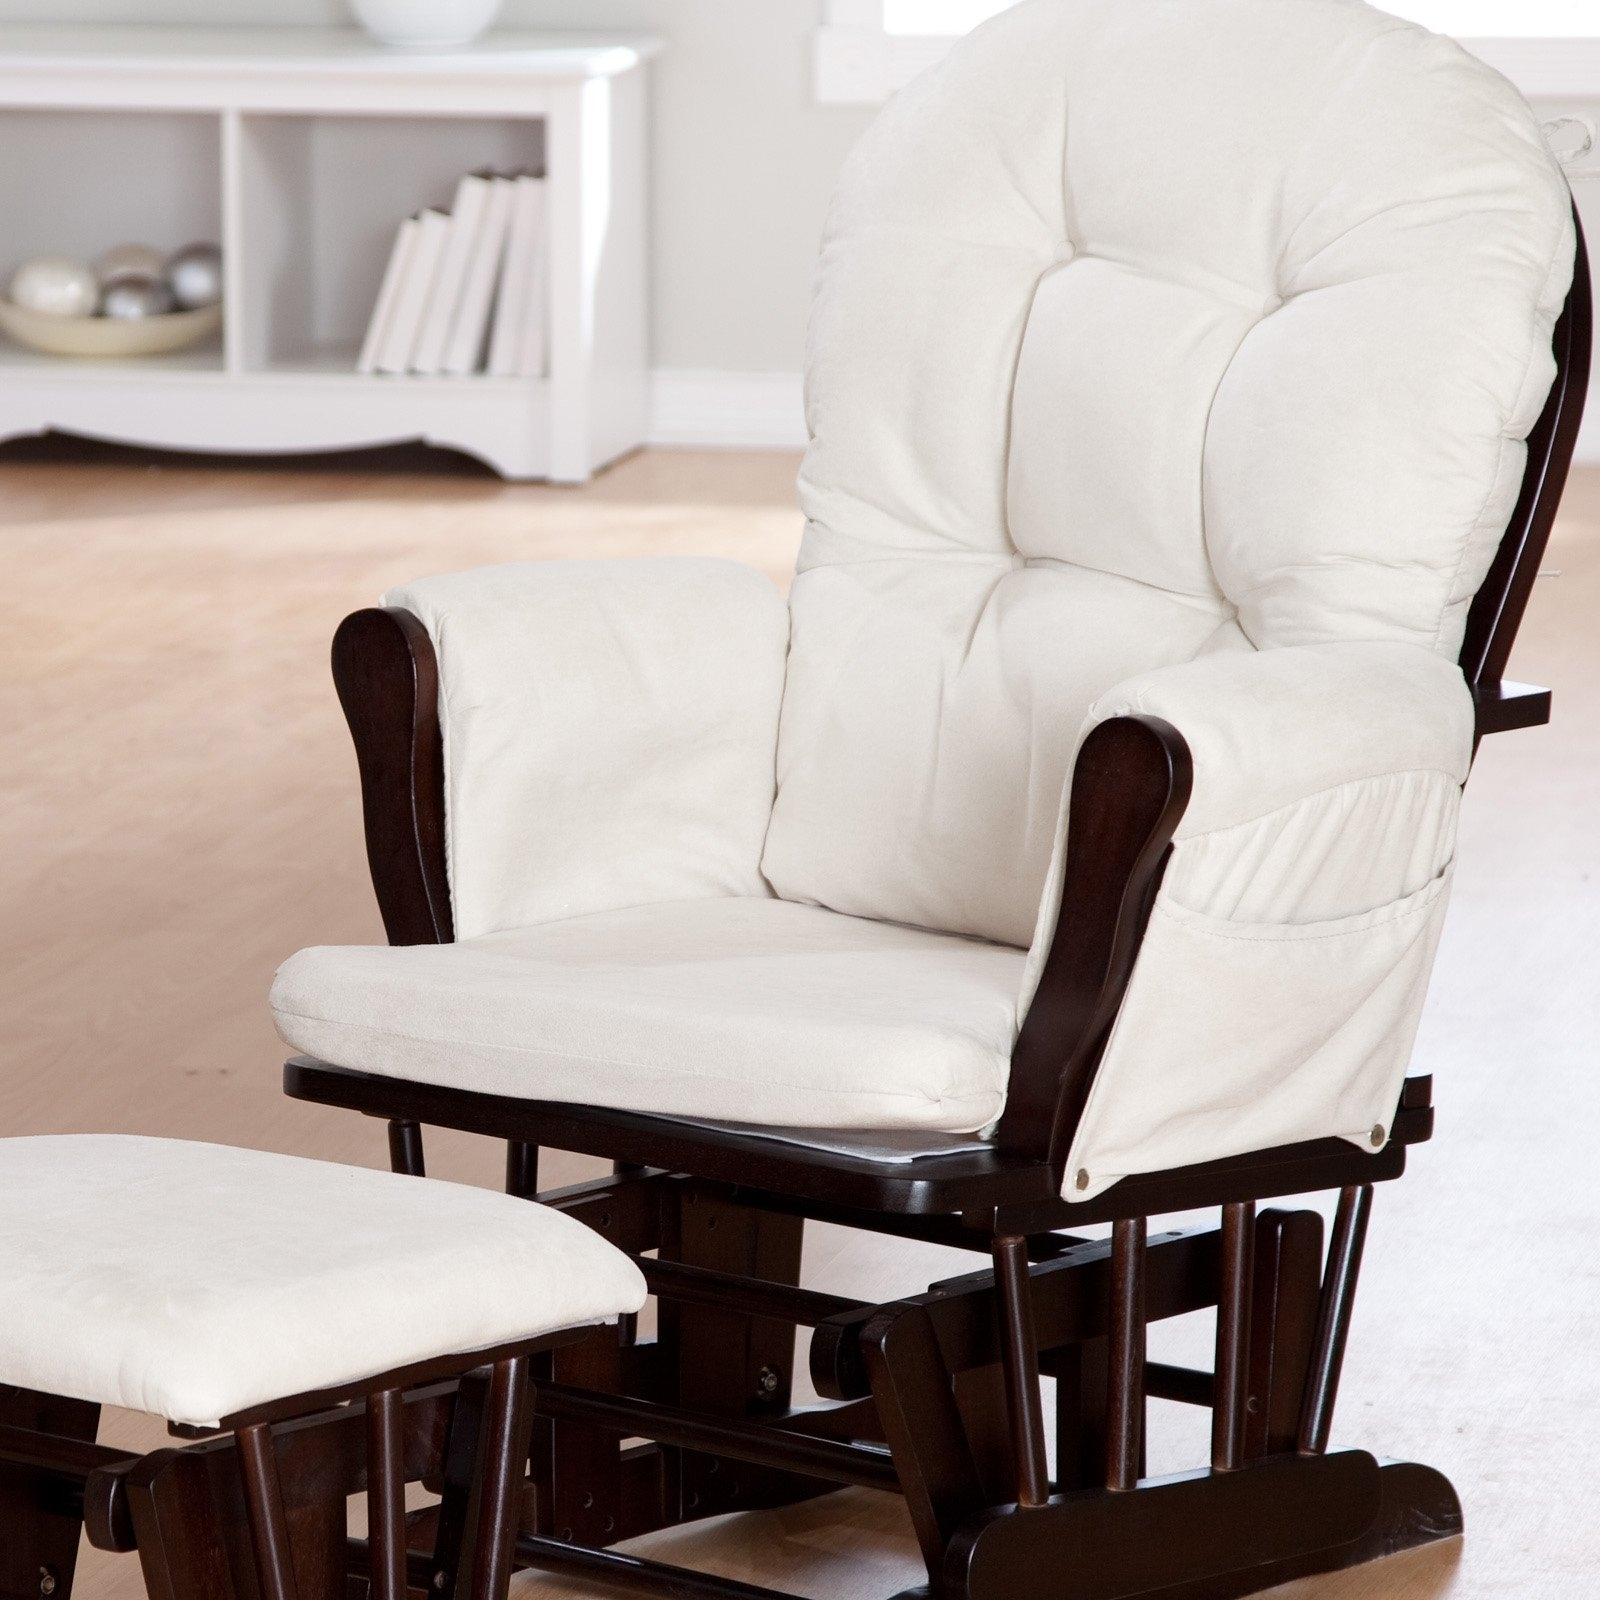 Trendy Storkcraft Bowback Glider And Ottoman Set – Espresso/beige (View 4 of 20)